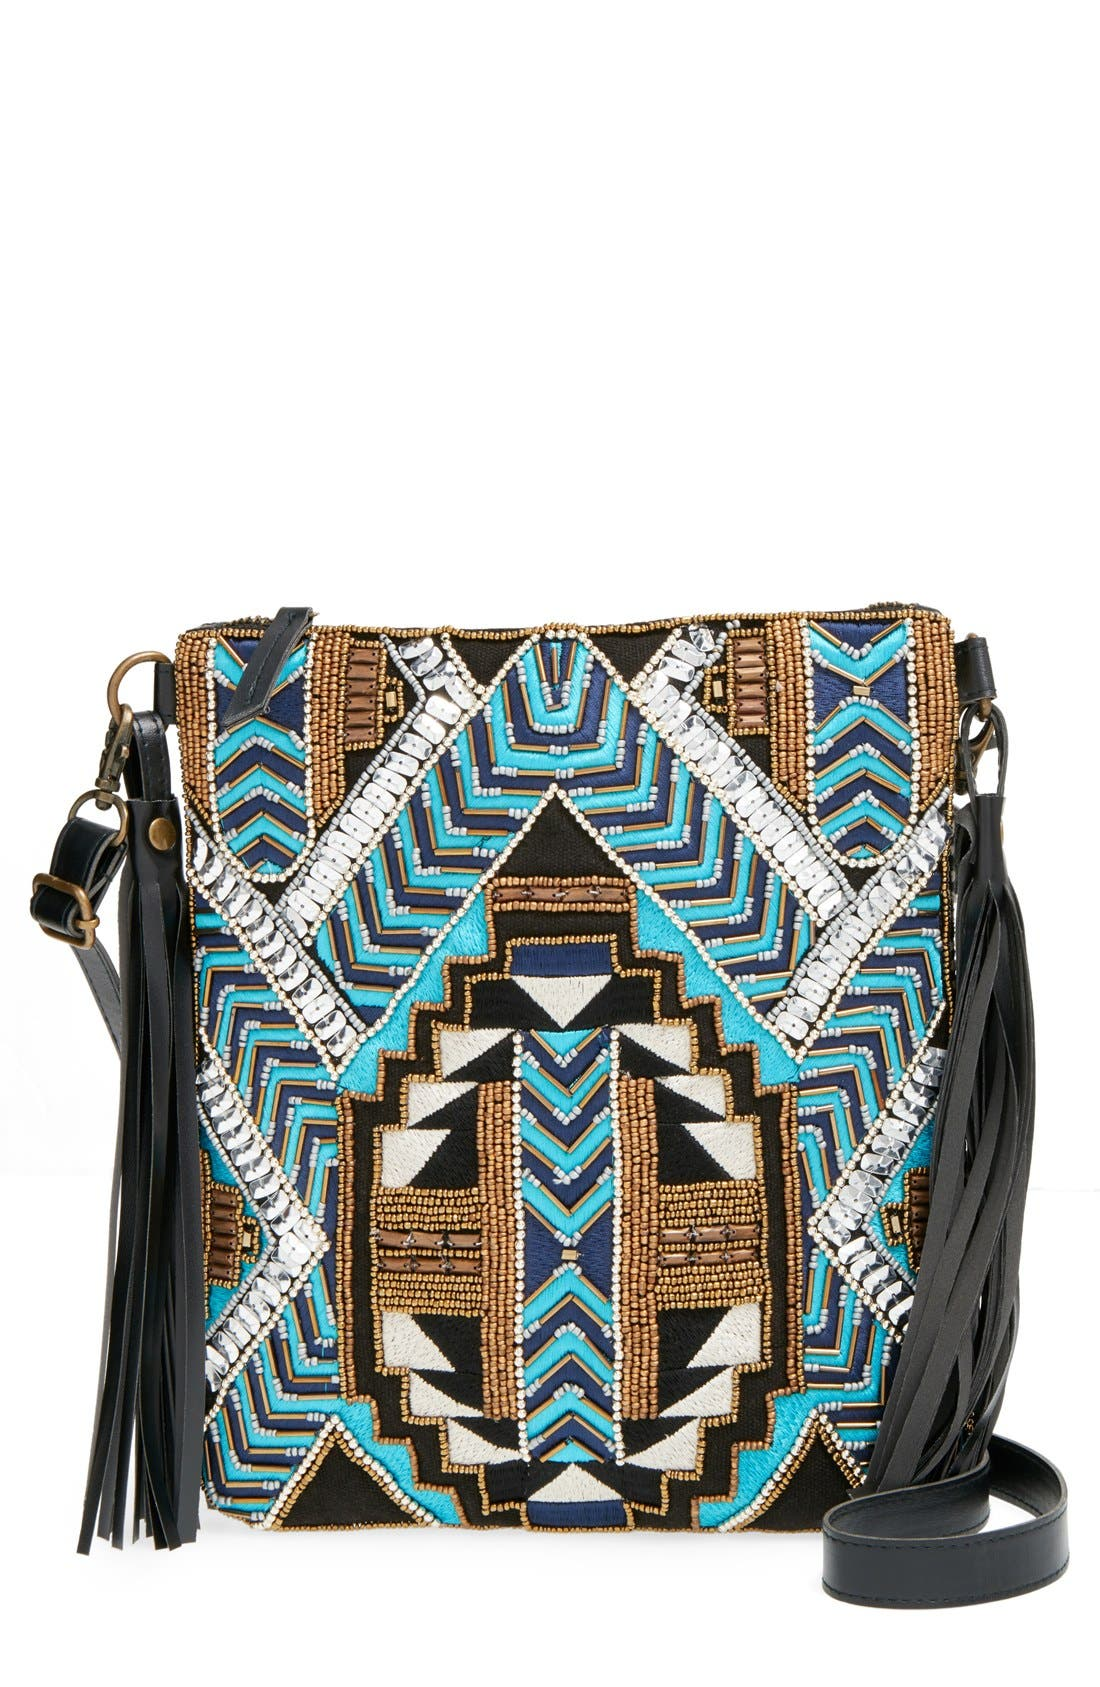 Alternate Image 1 Selected - Big Buddha Geo Beaded Crossbody Bag